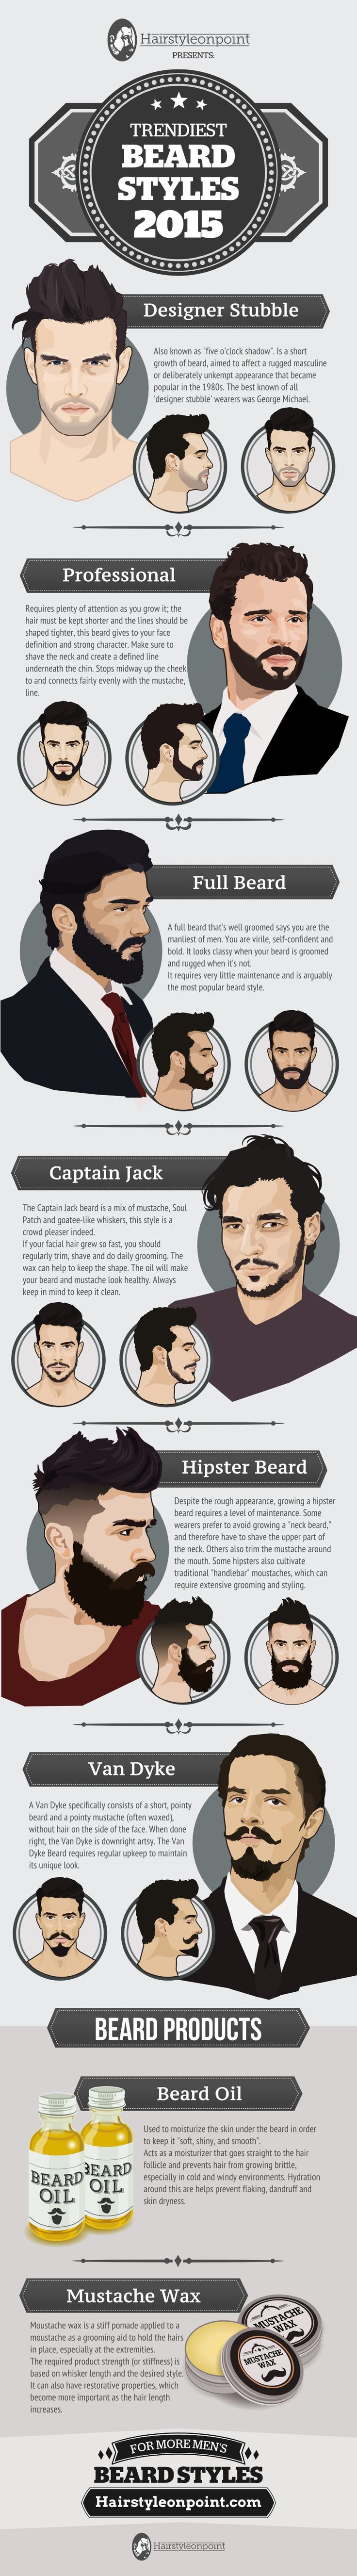 the 25 best beard styles 2015 ideas on pinterest latest styles for men beard styles for men. Black Bedroom Furniture Sets. Home Design Ideas